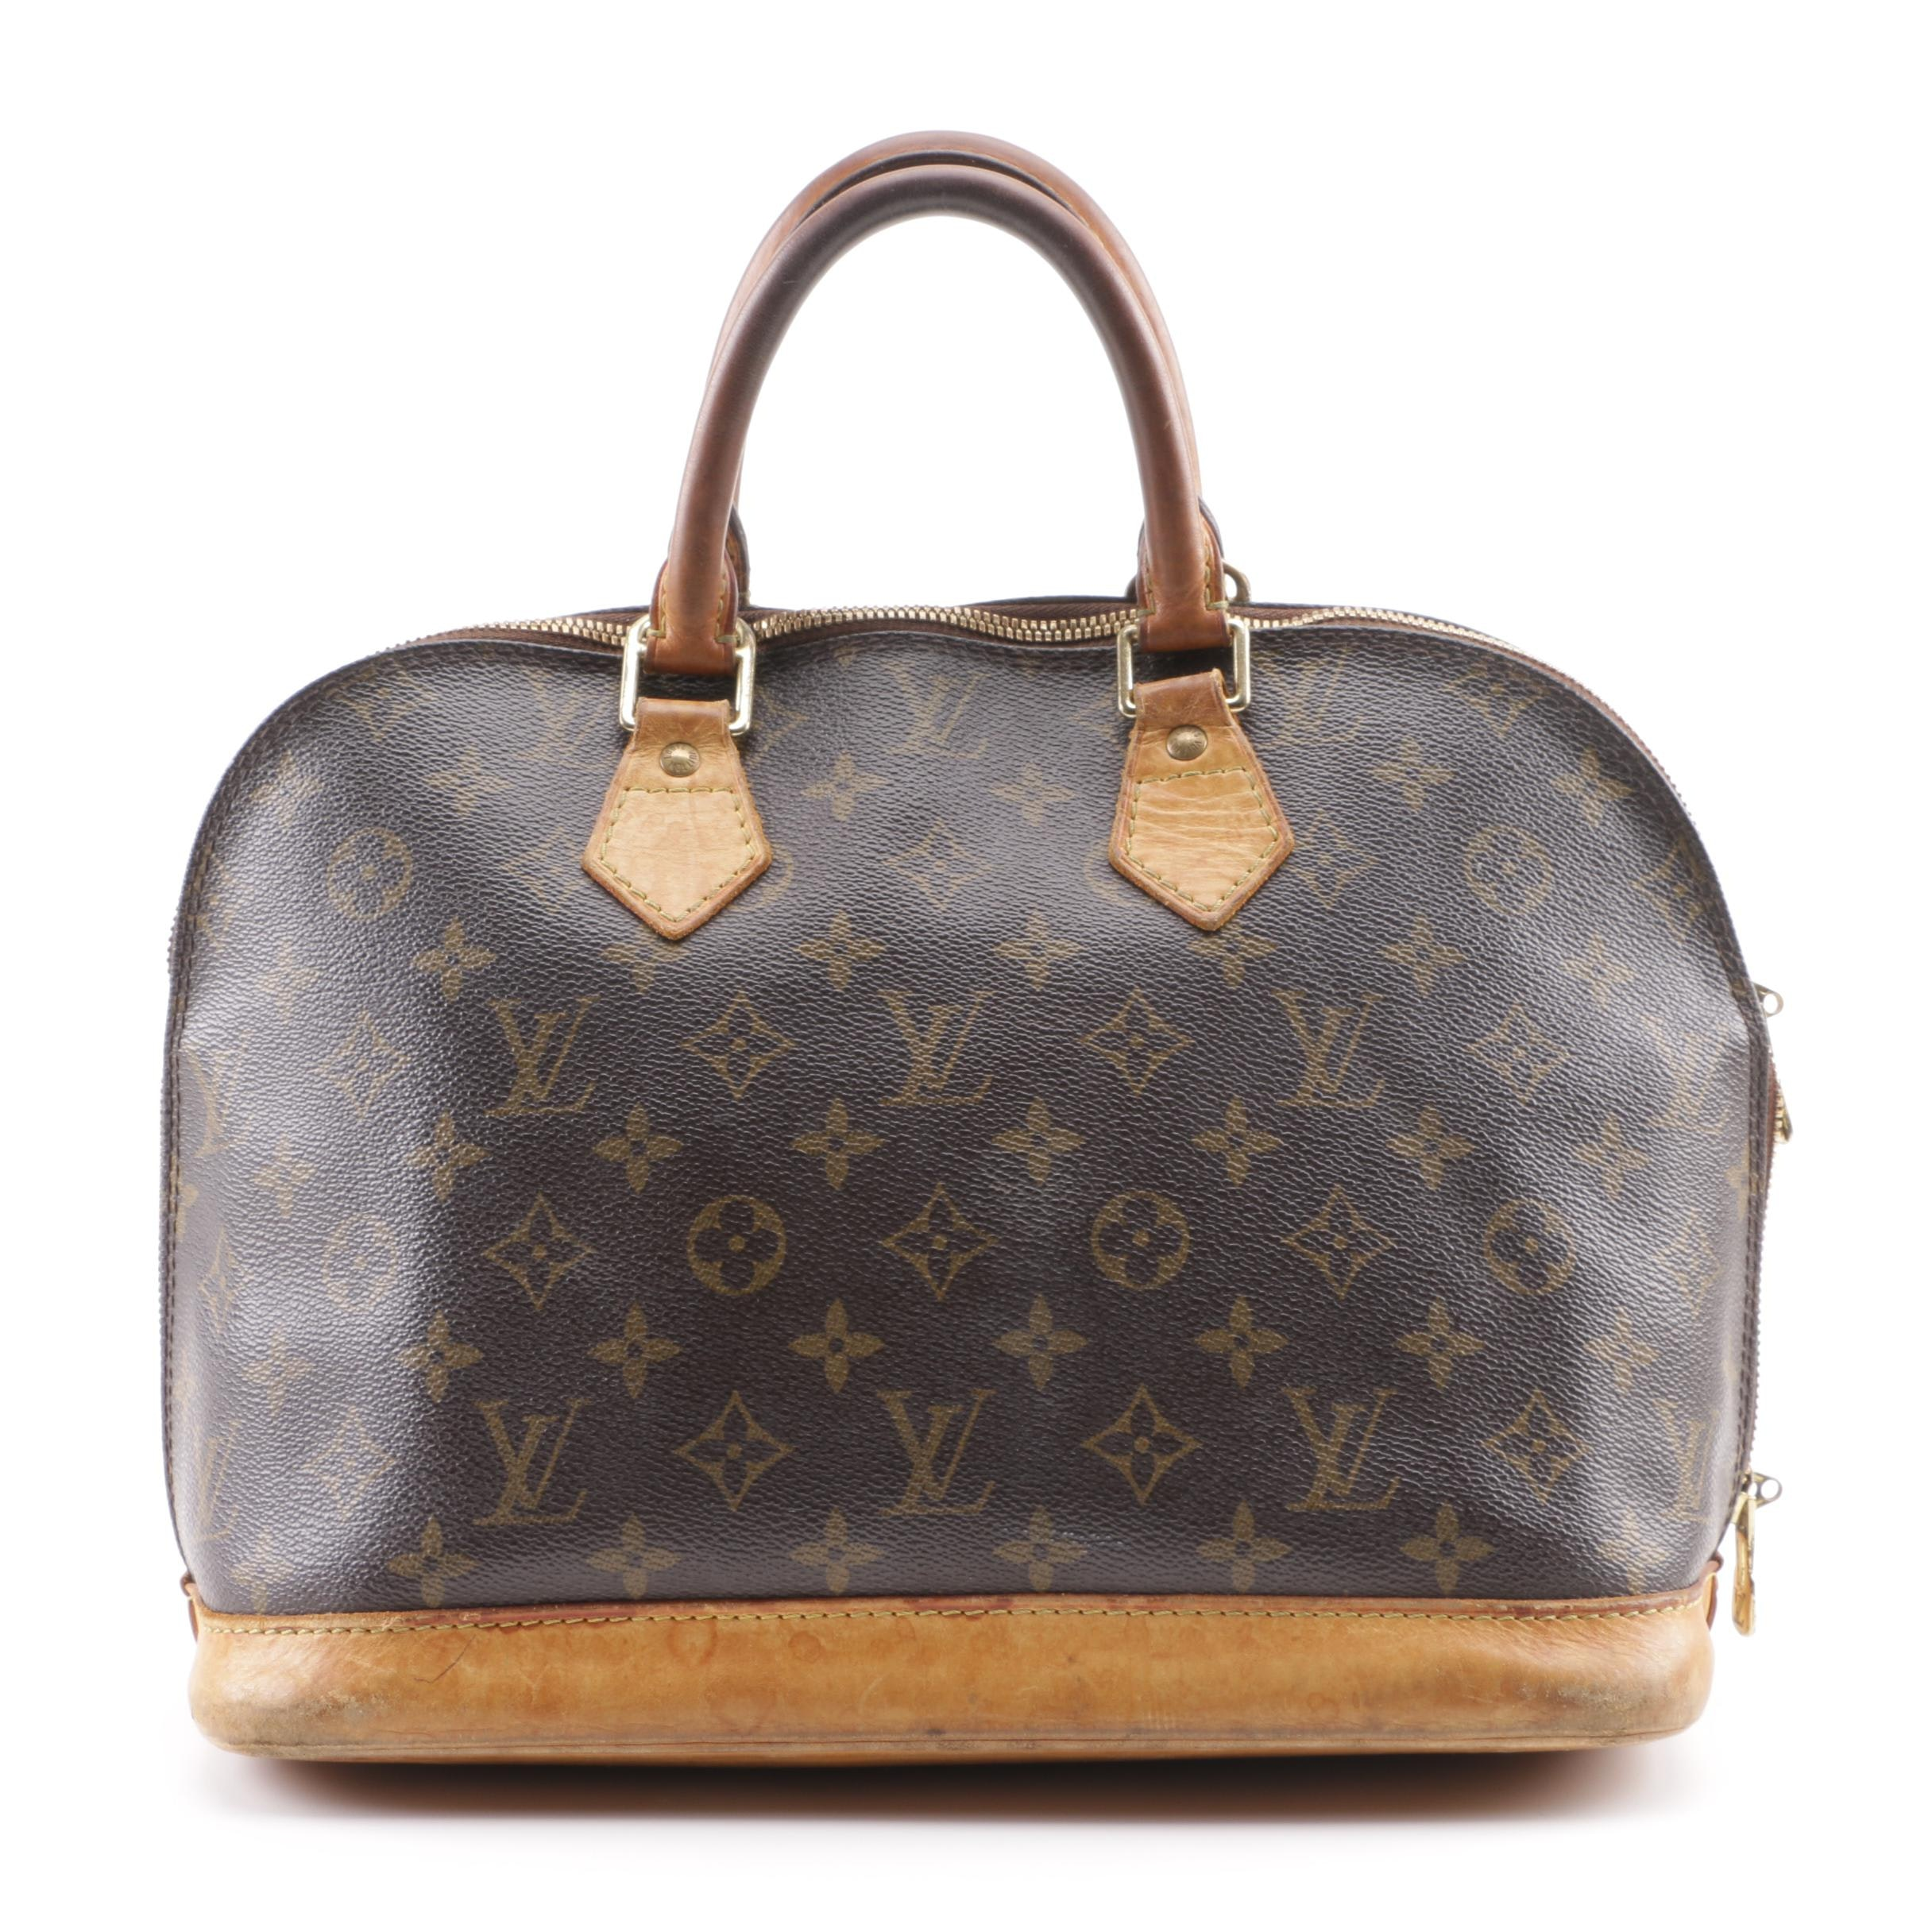 2005 Louis Vuitton Monogram Canvas Alma Bag